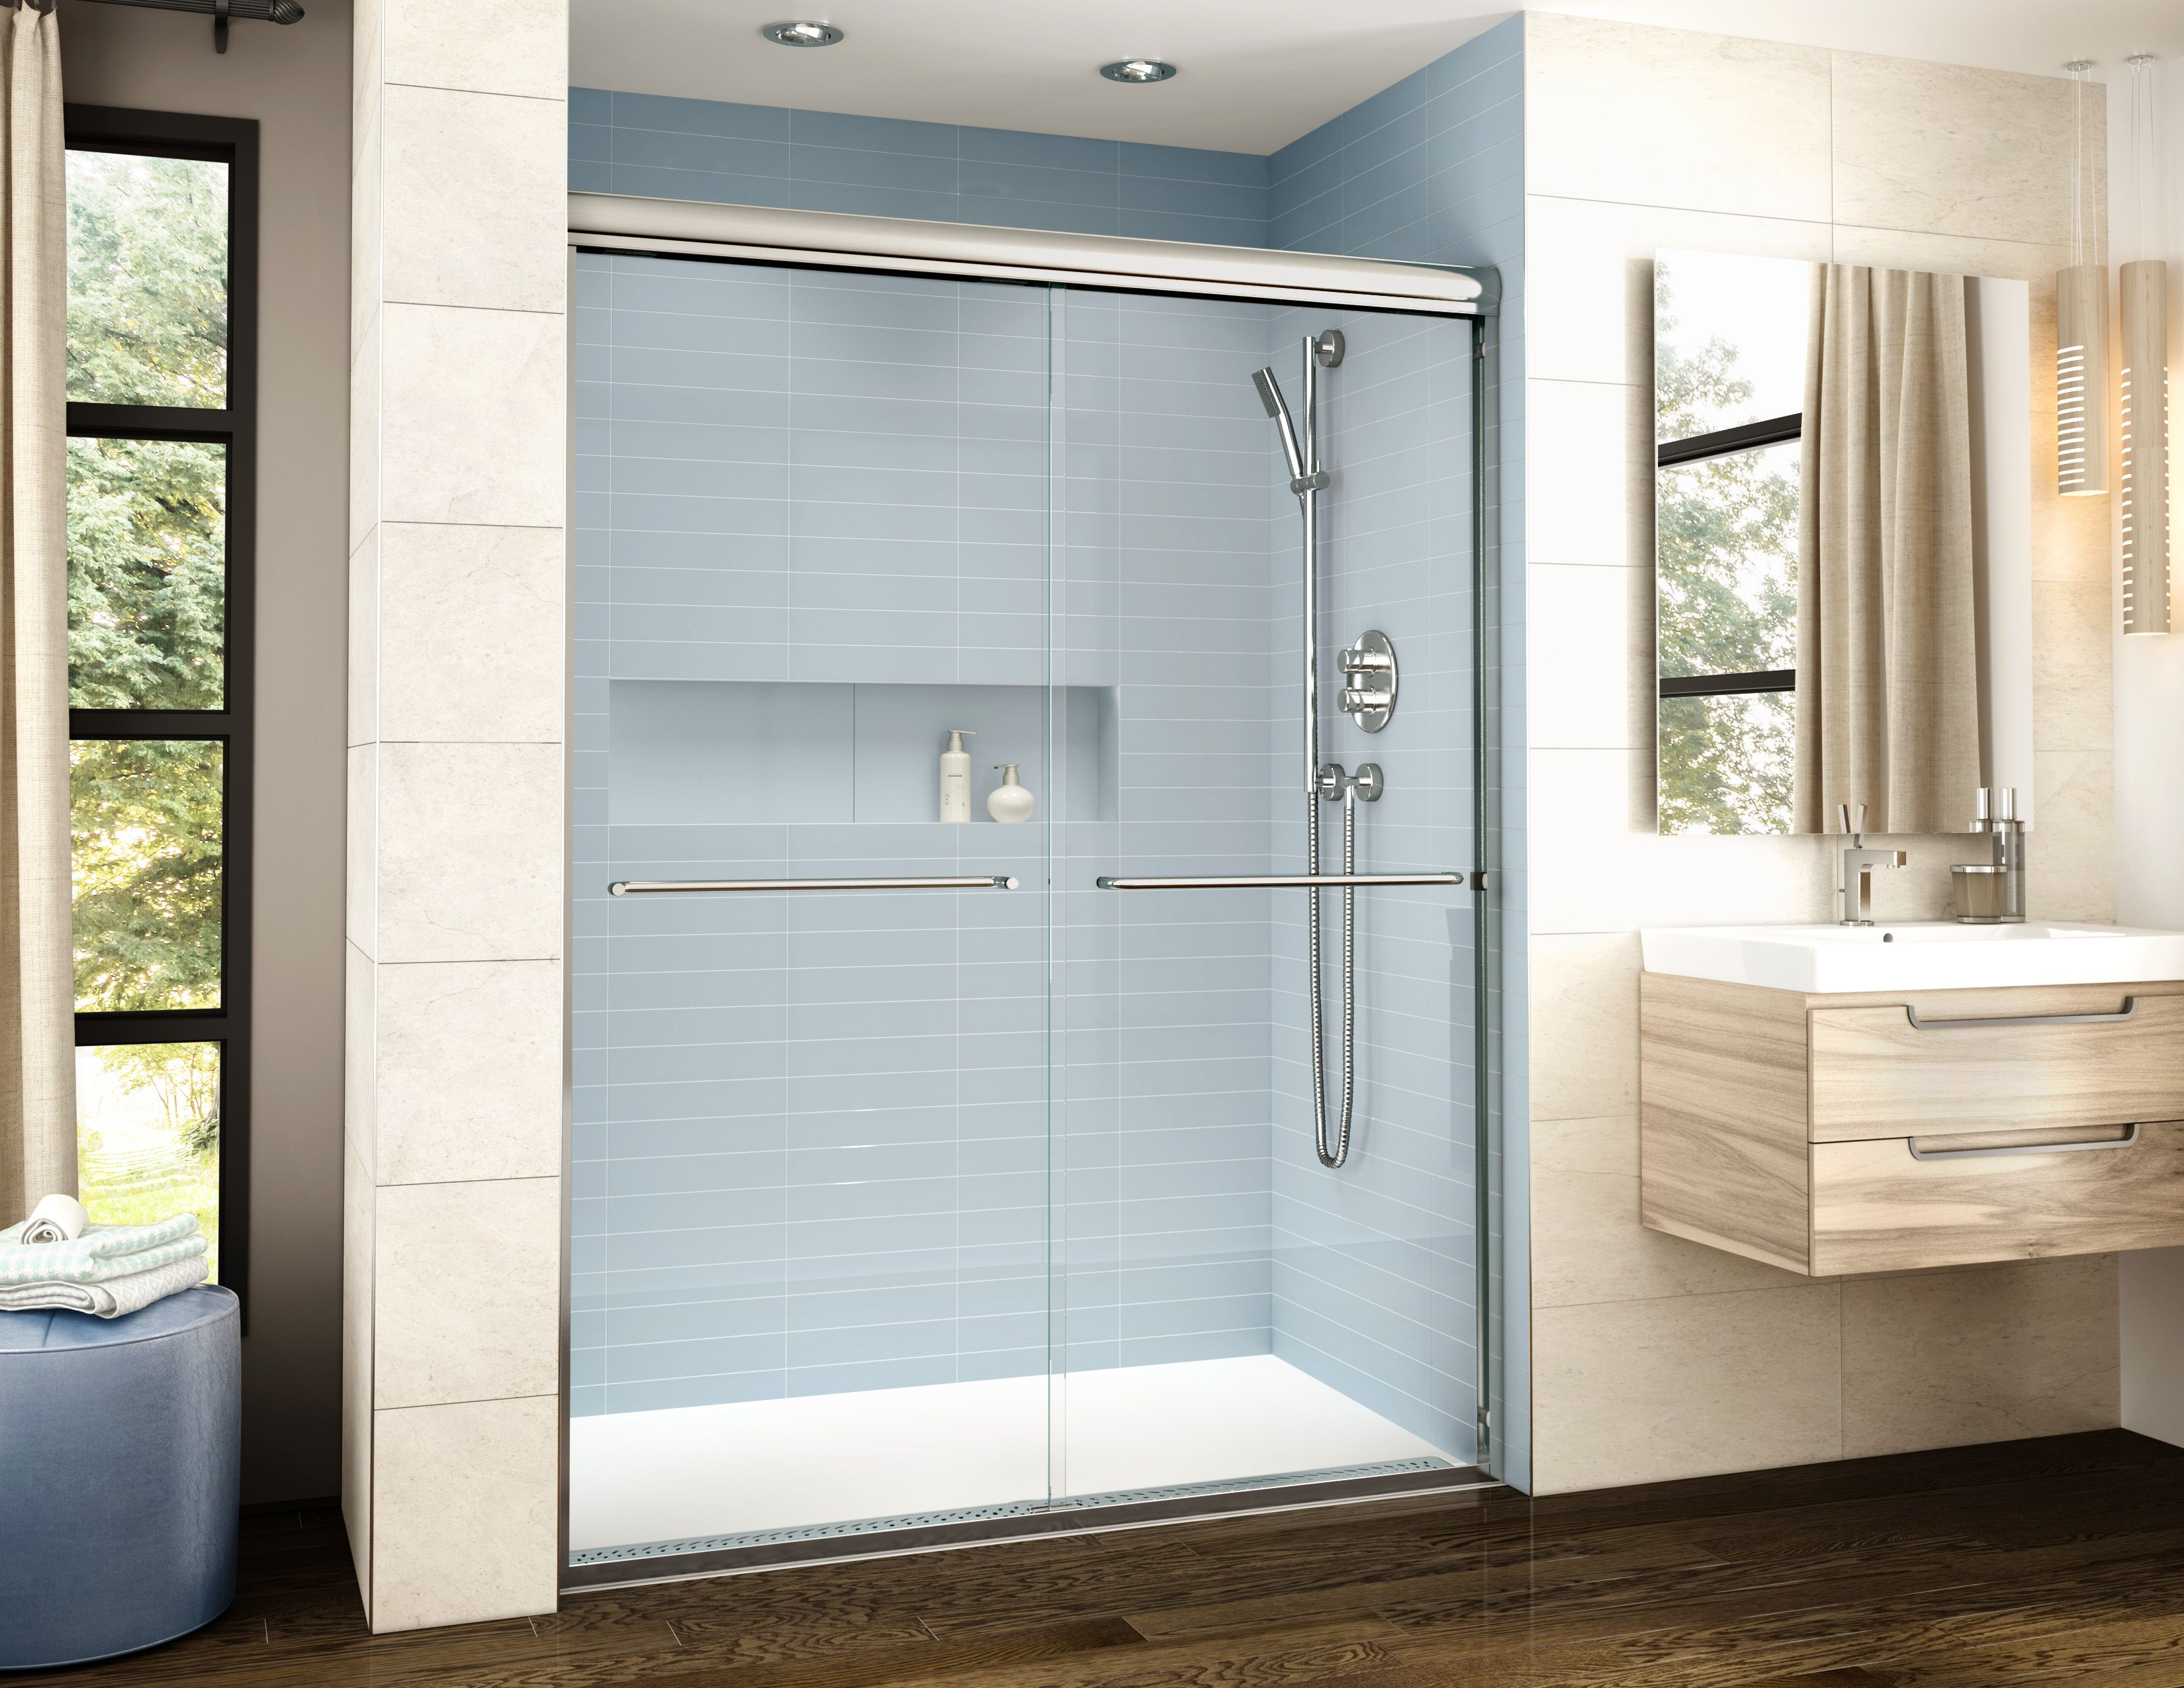 Adaptek Shower Base And The Banyo Cordoba Shower Door Fleurco intended for size 3300 X 2550